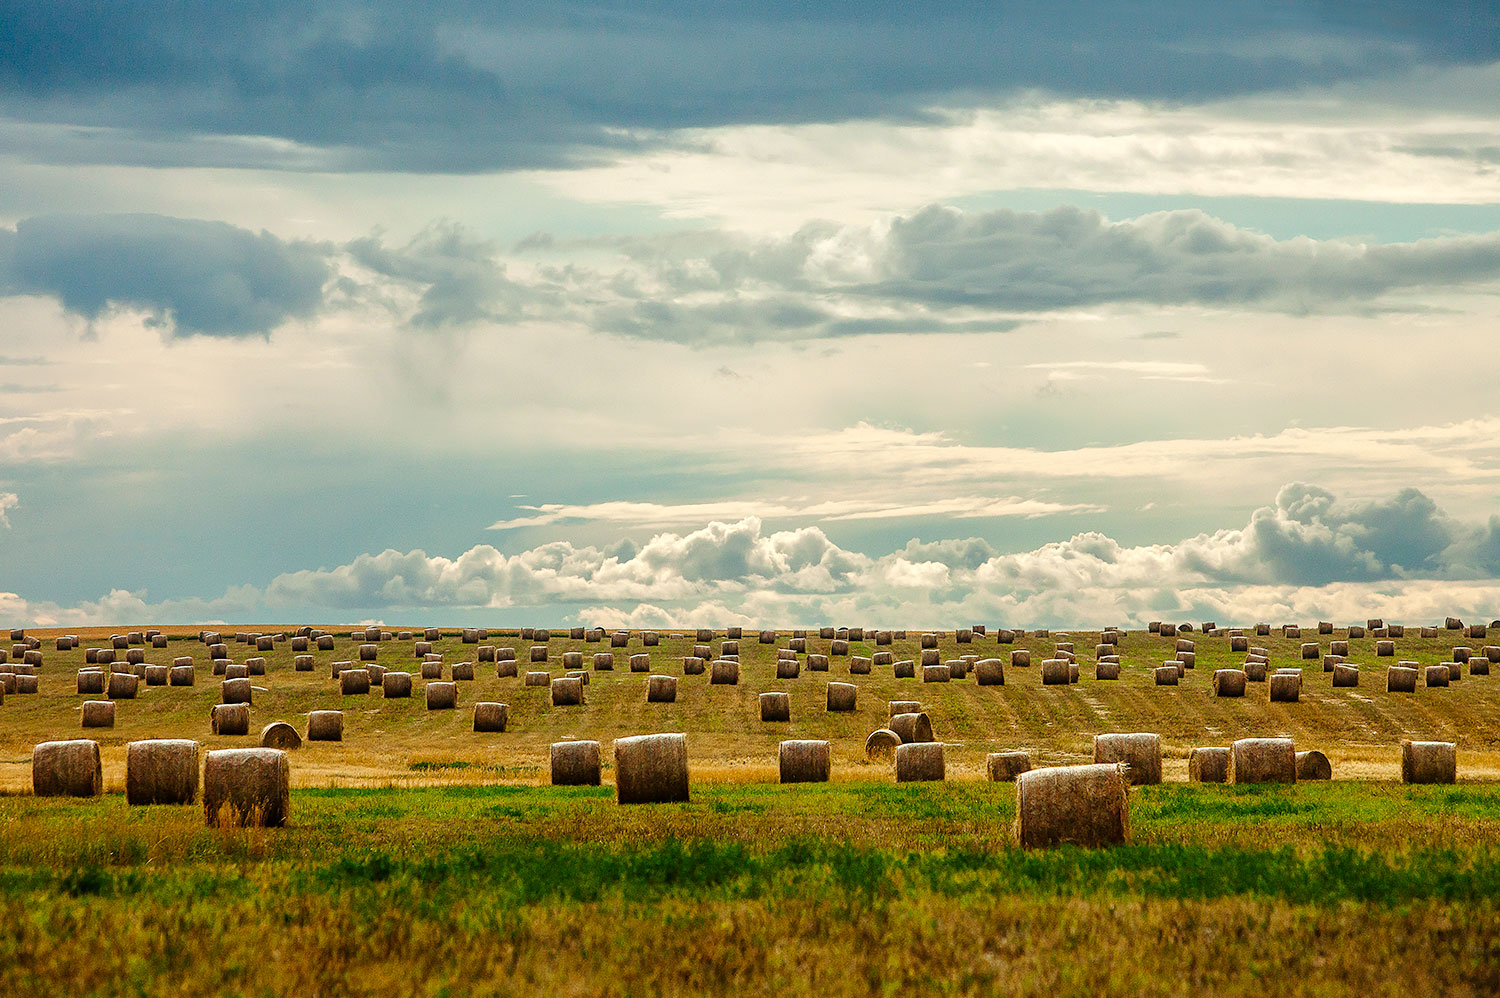 Littered with Bales